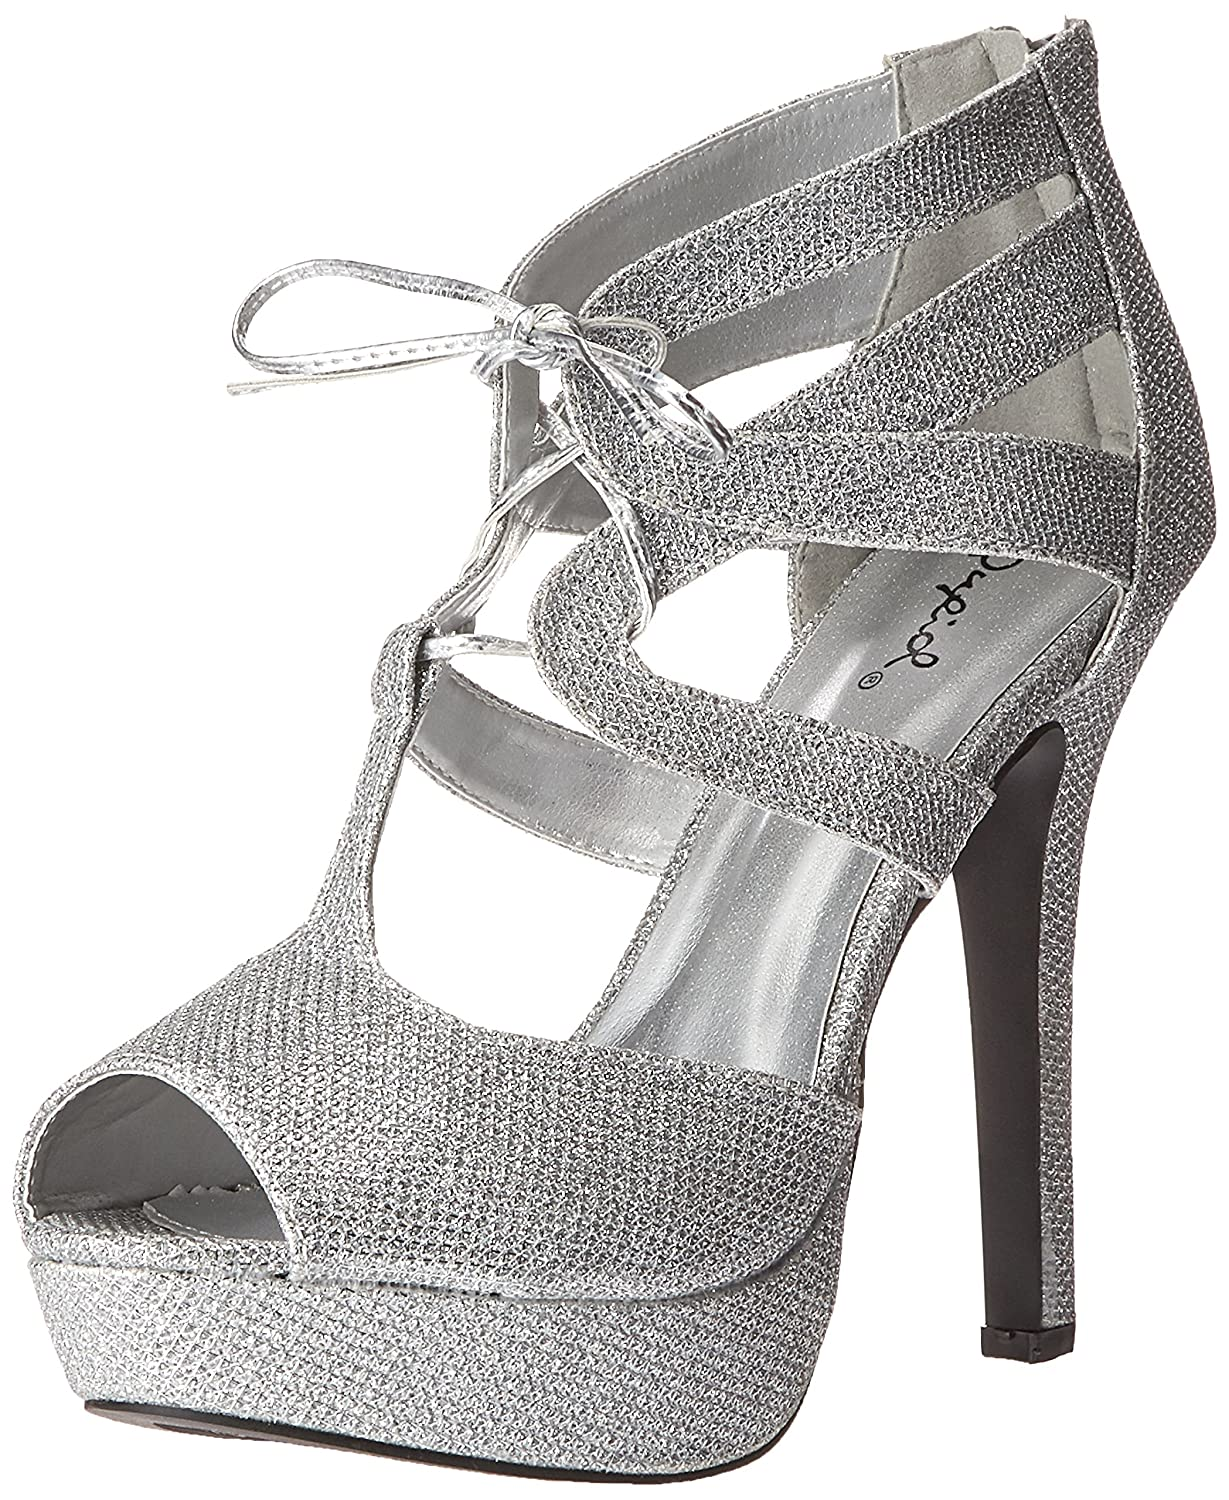 Qupid Women's Gaze-450 Platform Dress Sandal B01BV1MPBI 10 B(M) US|Silver